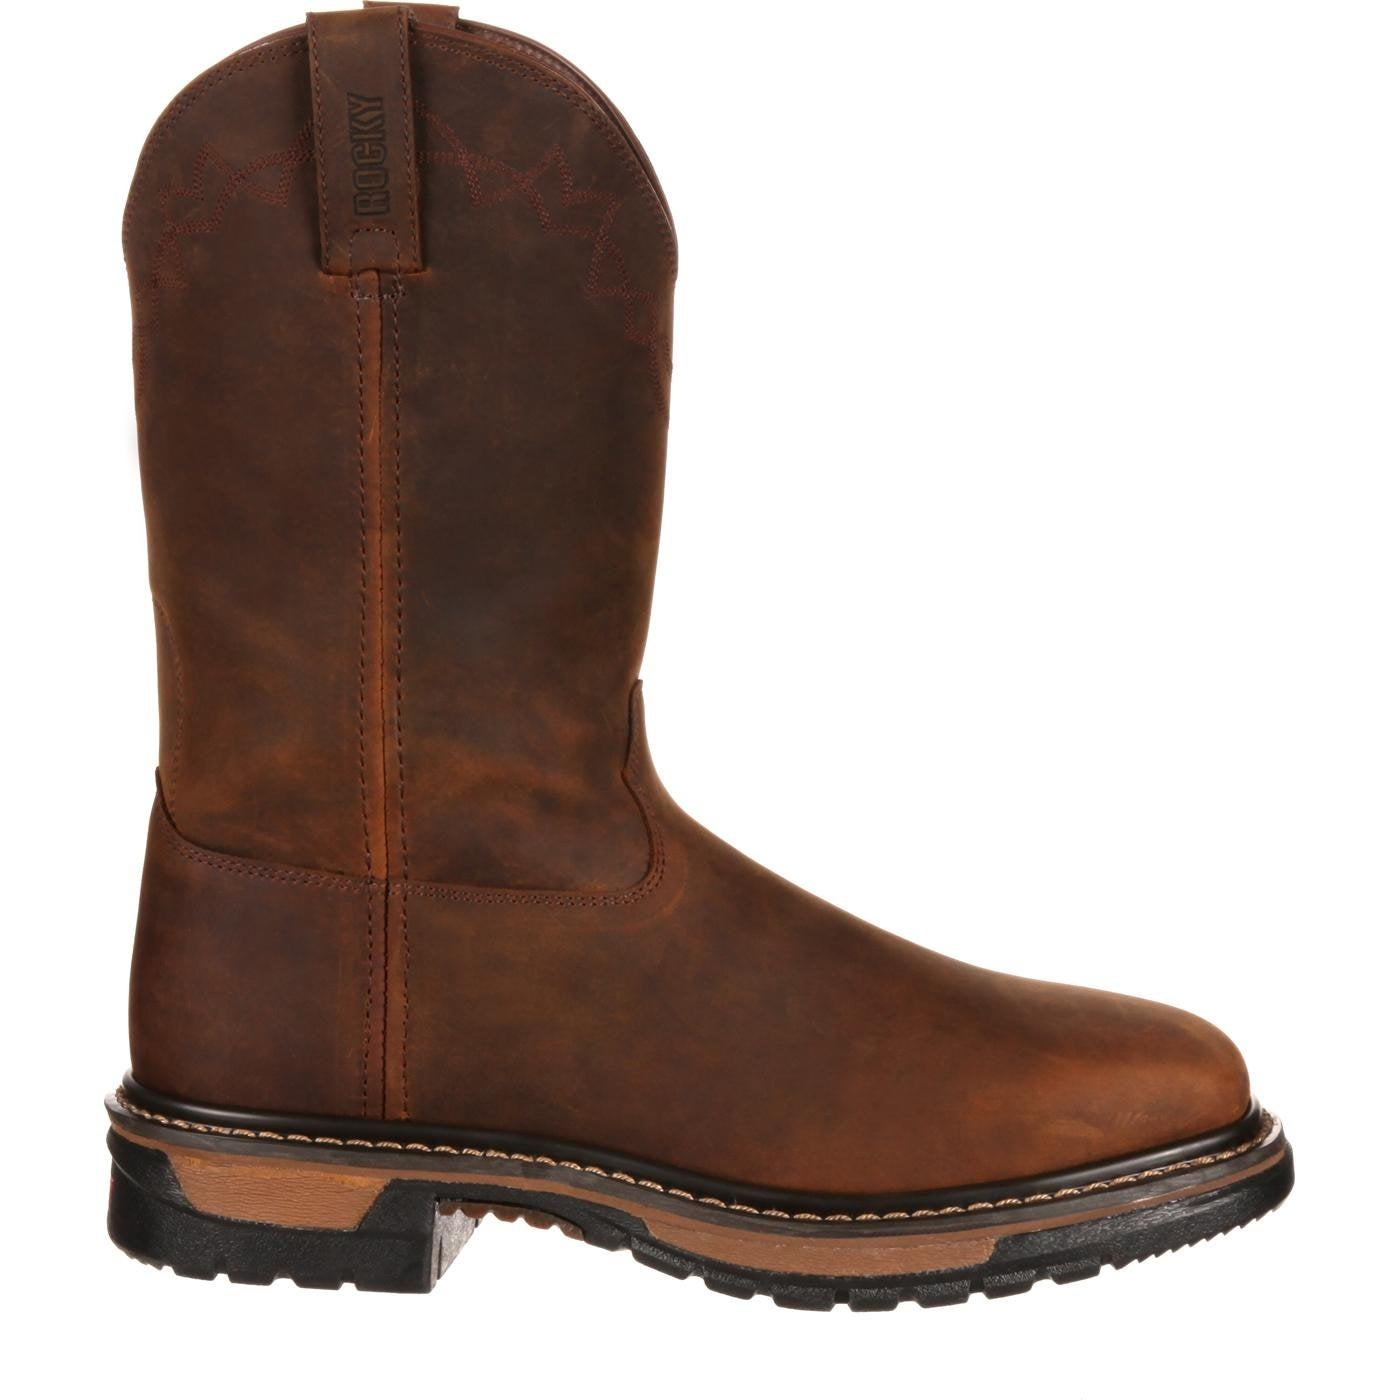 factory outlets detailed look promo codes Rocky Original Ride Men's Western Boots, style #RKW0131